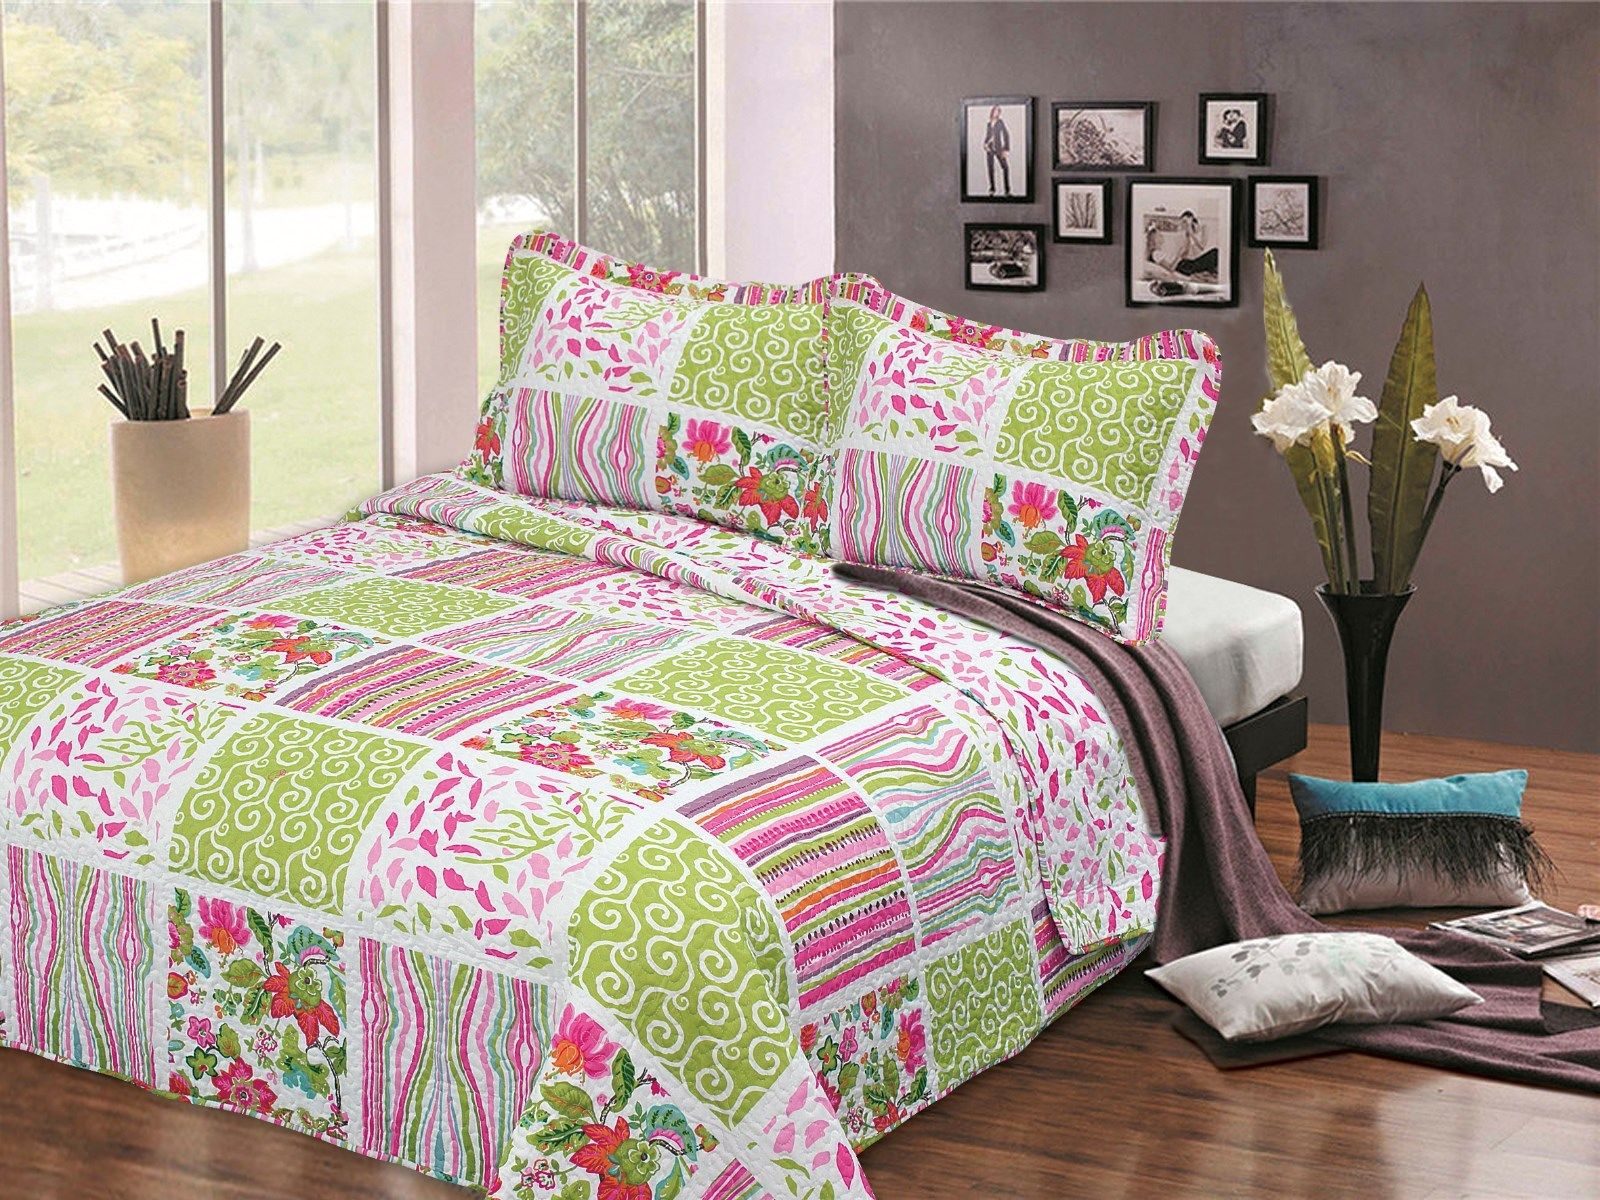 Green Art Bedspread